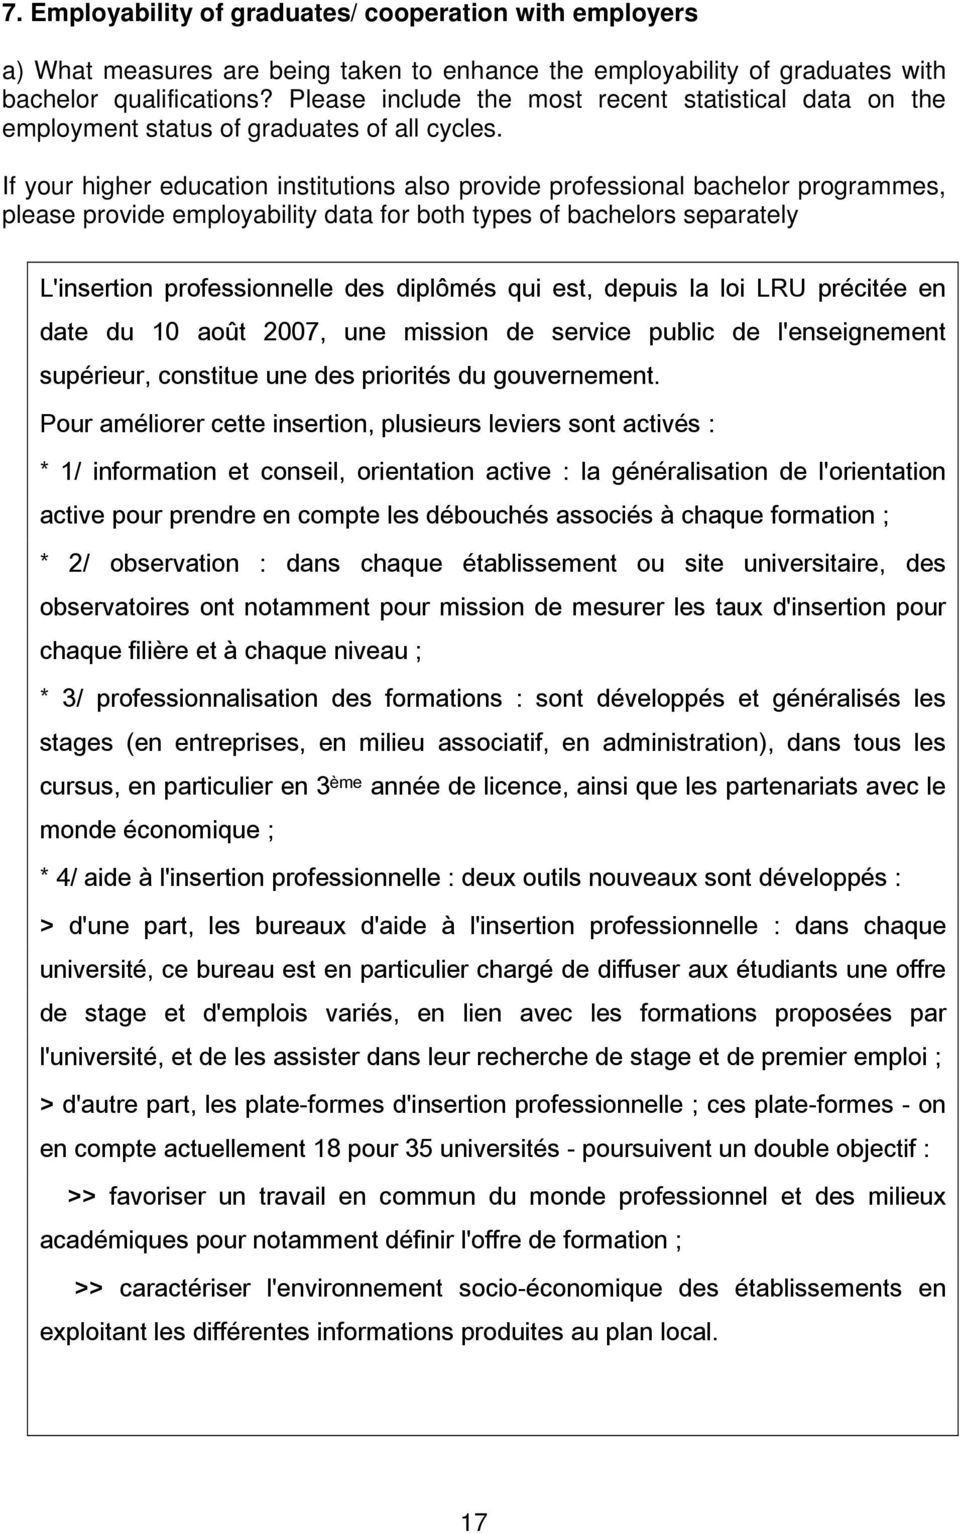 If your higher education institutions also provide professional bachelor programmes, please provide employability data for both types of bachelors separately L'insertion professionnelle des diplômés